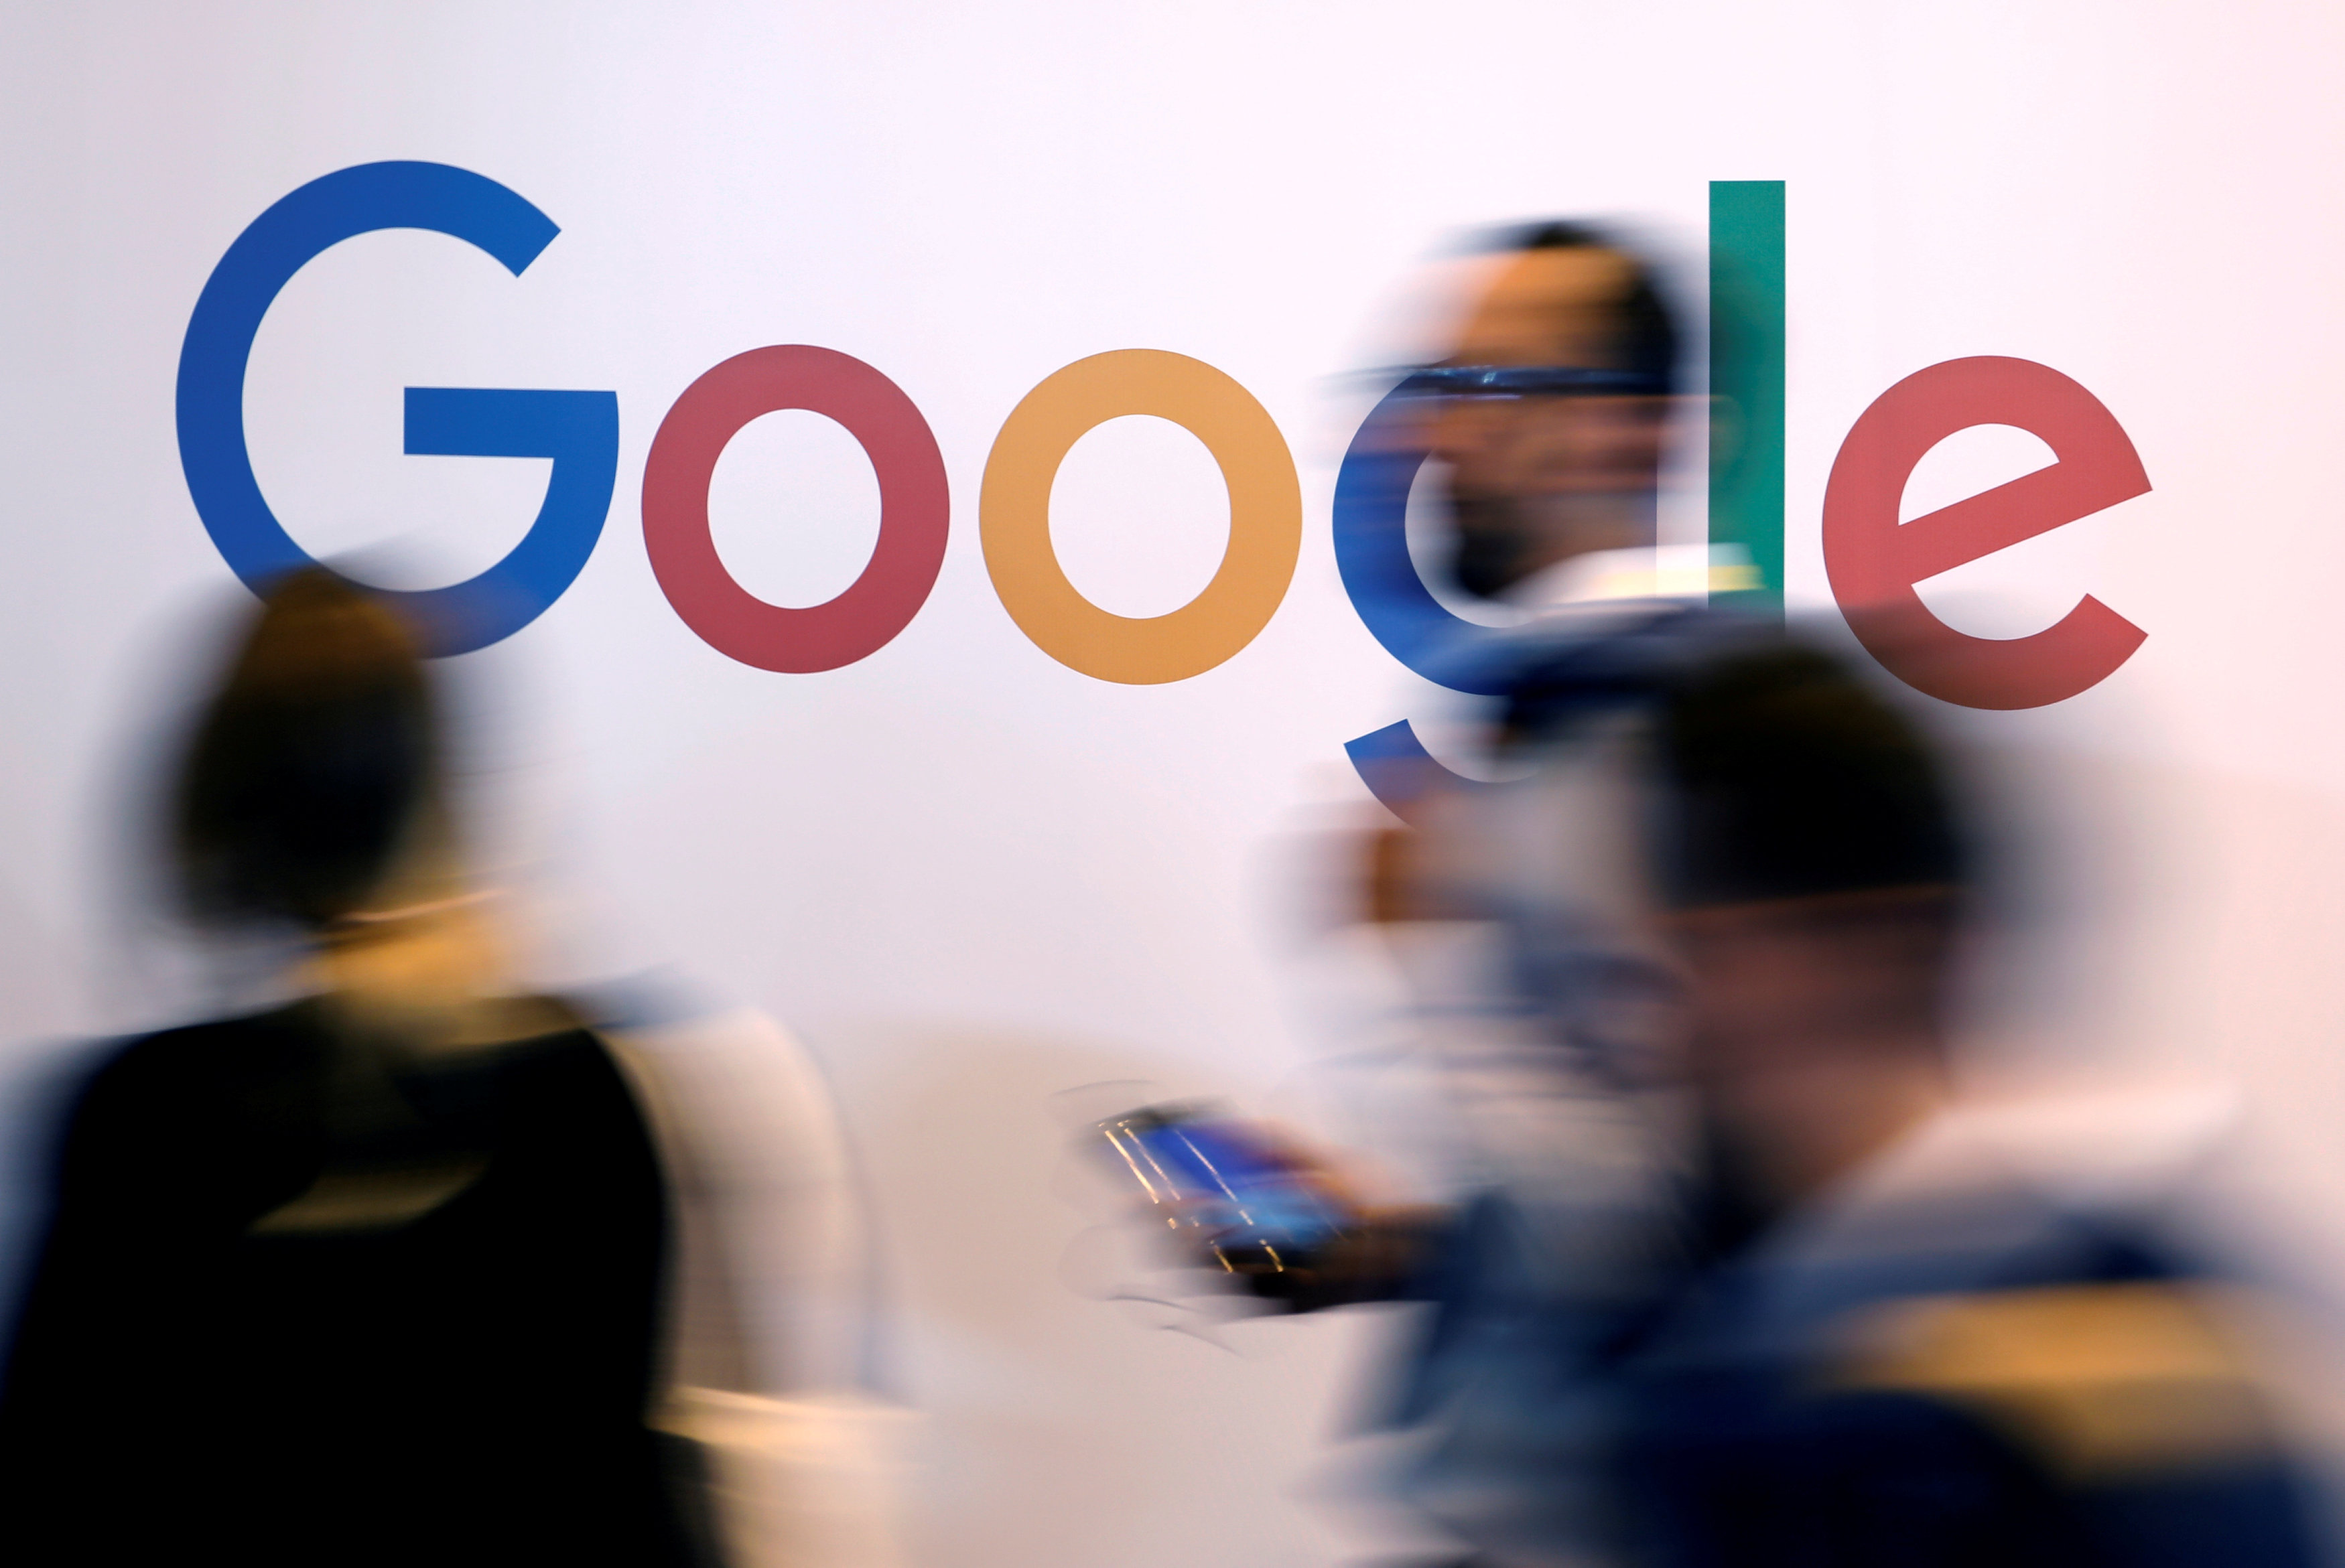 The logo of Google is pictured during the Viva Tech start-up and technology summit in Paris, France